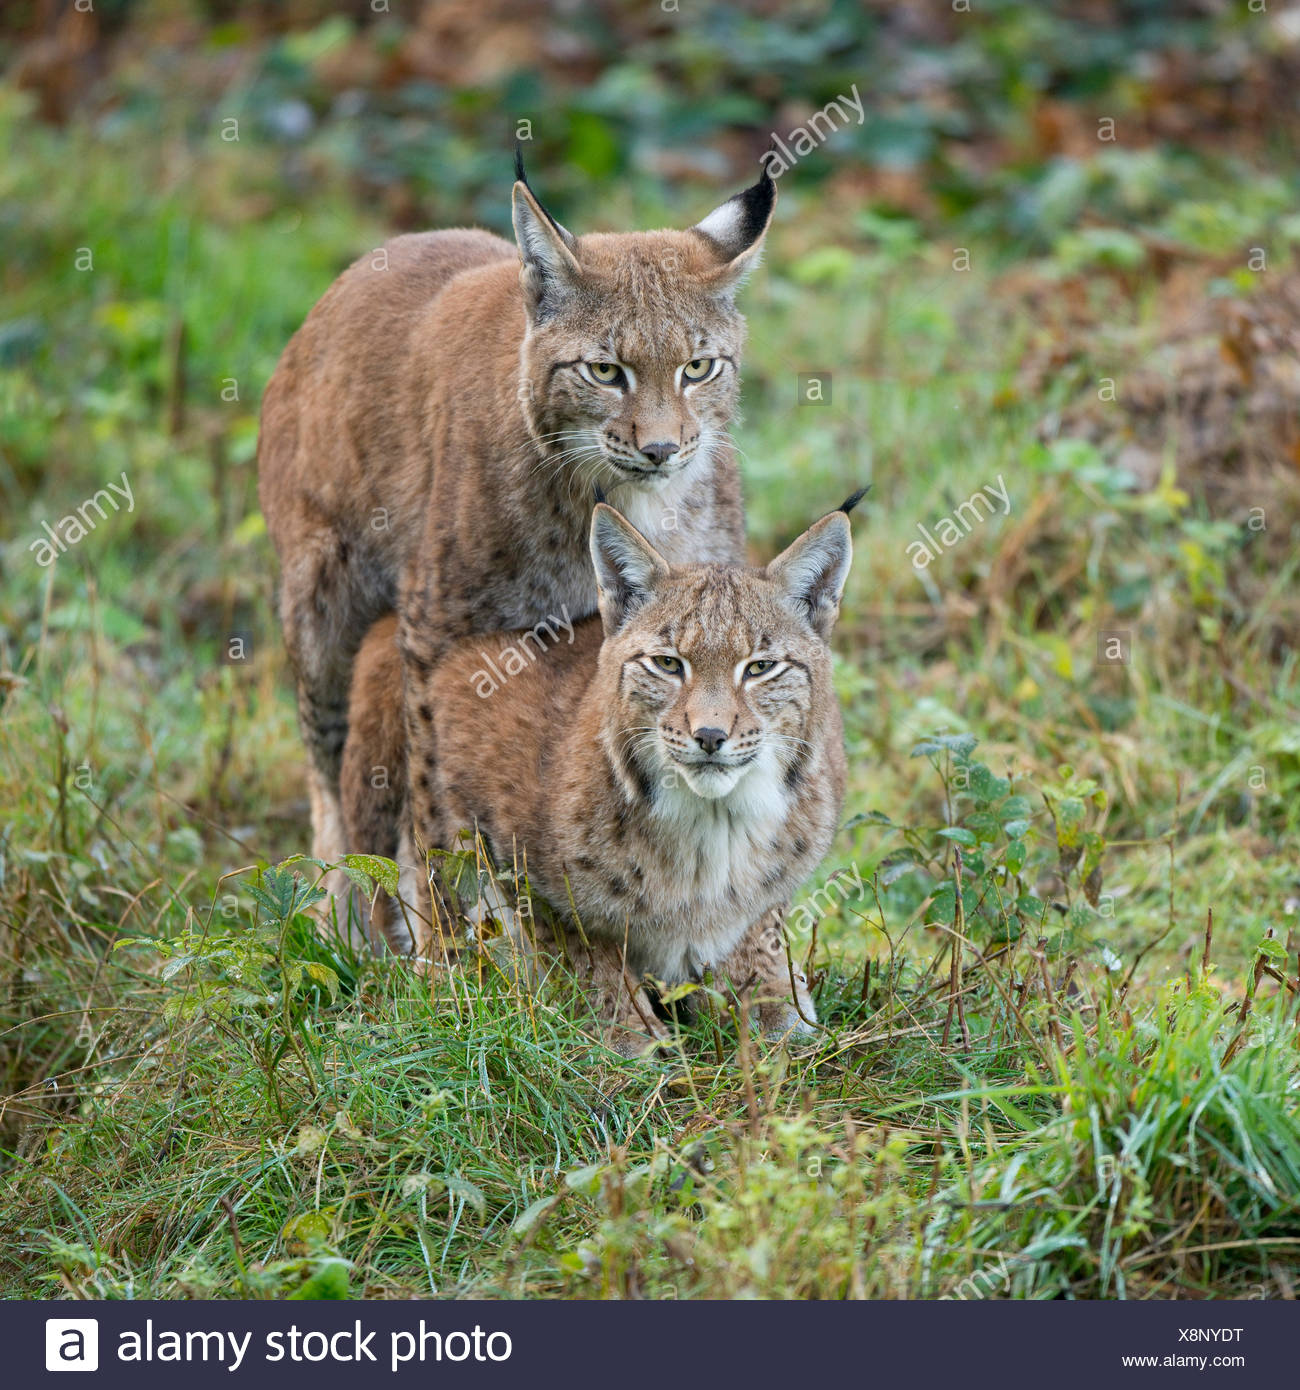 Eurasian Lynx (Lynx lynx), mating attempt of a young lynx, captive, Lower Saxony, Germany - Stock Image